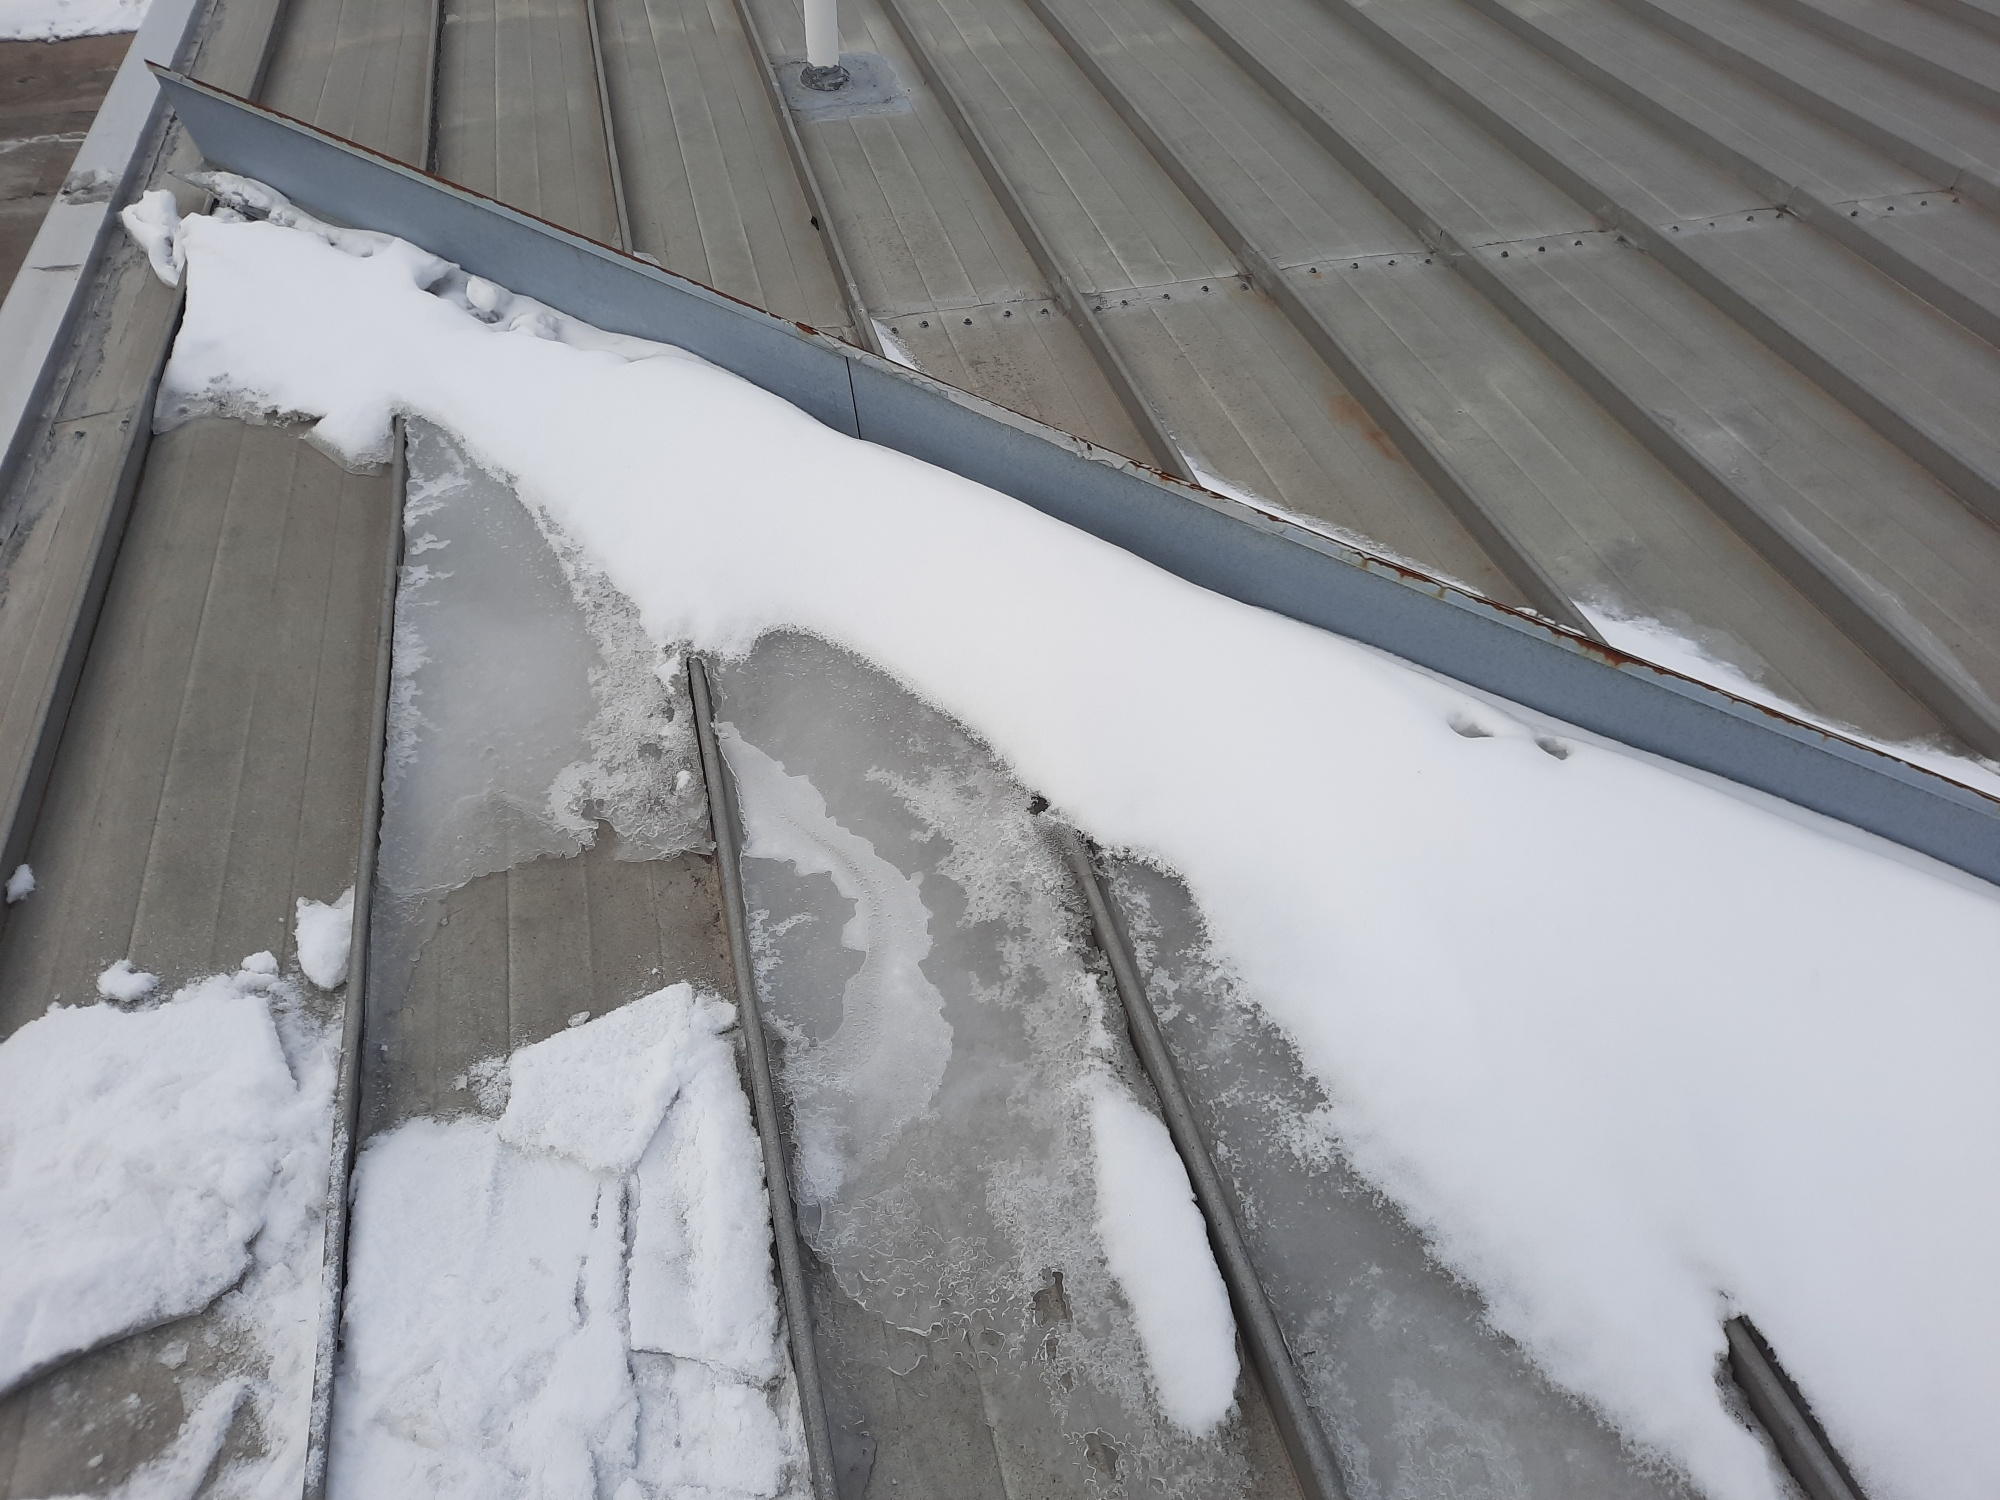 Leaks Due to Ice and Snow